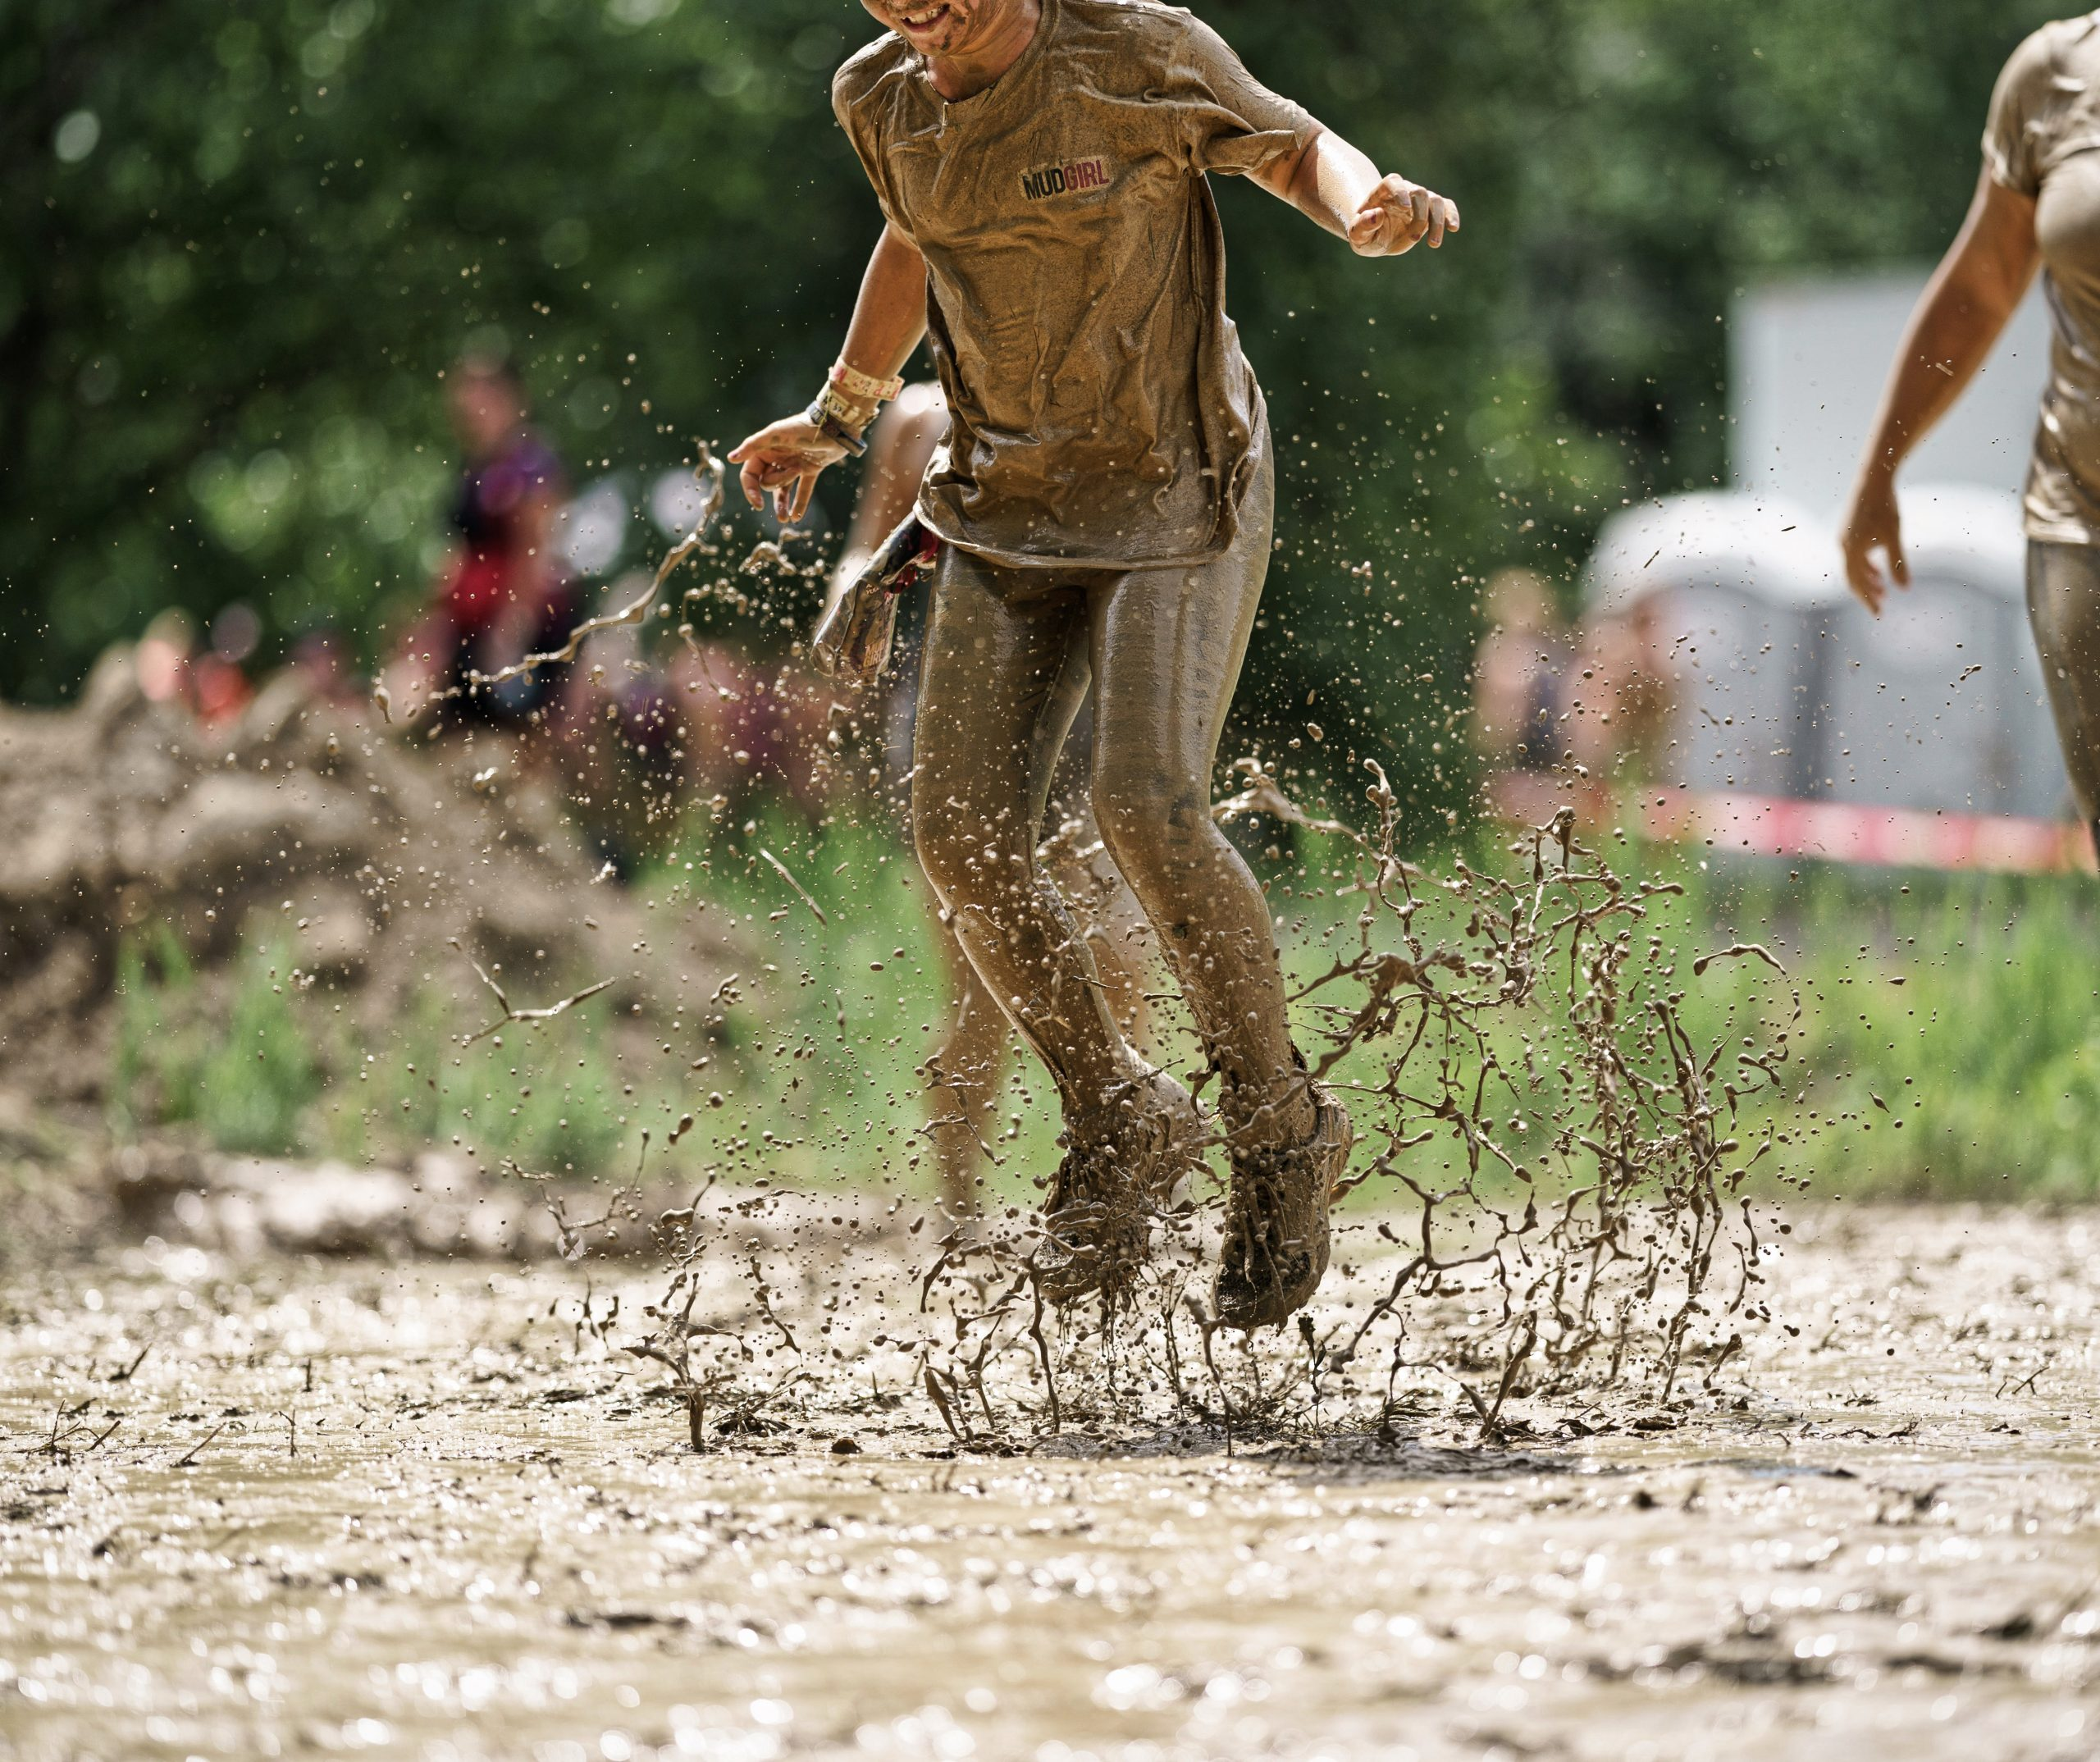 Girl jumping in mud